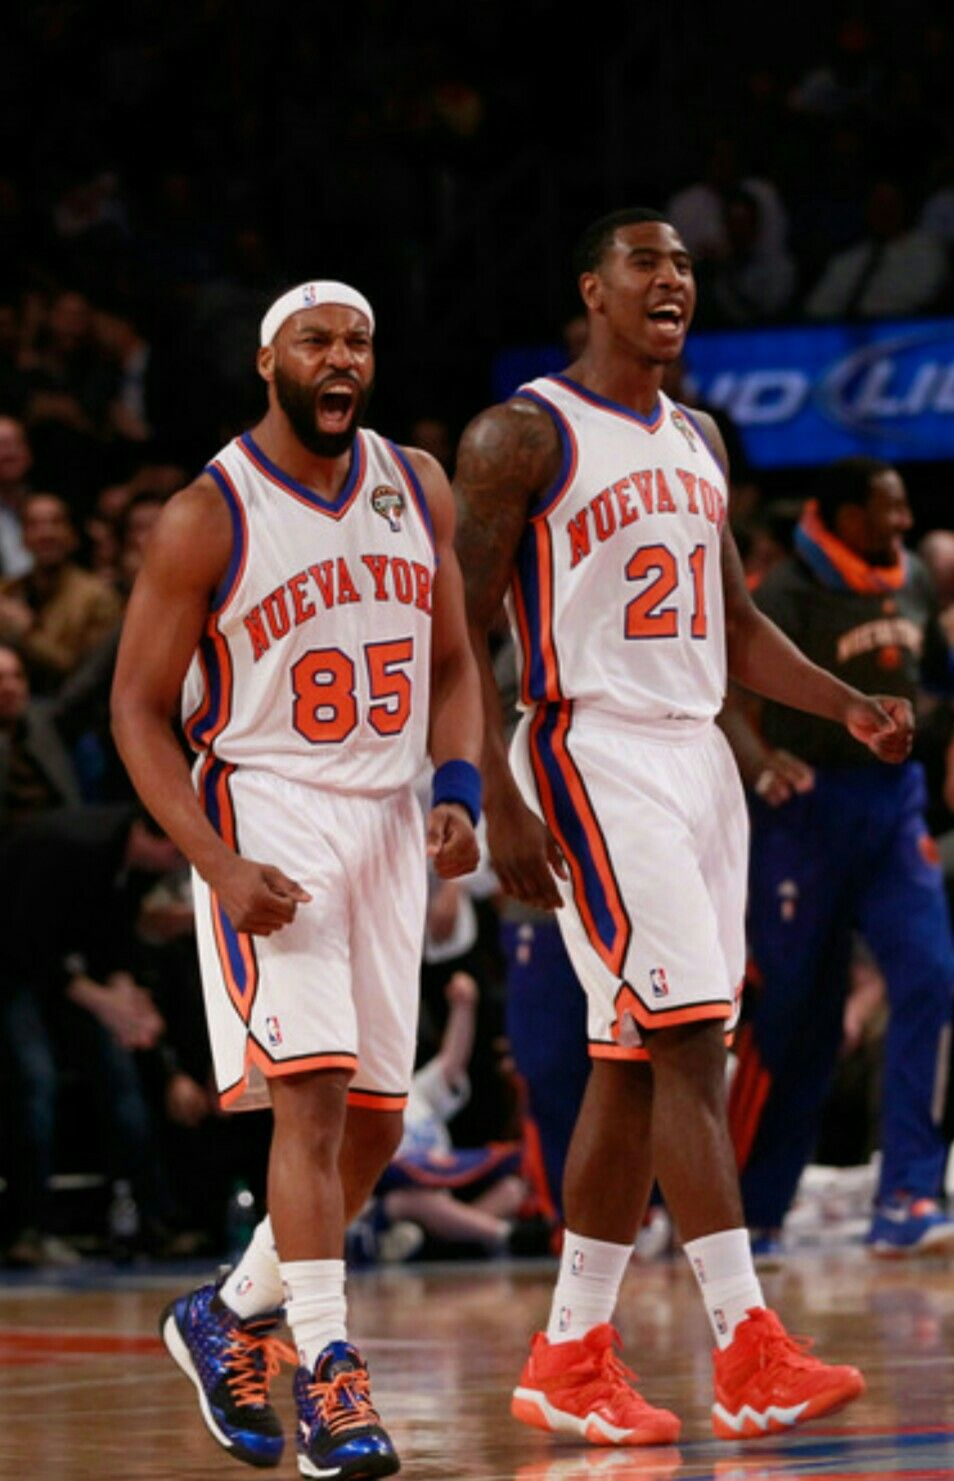 976f0c8a9 BARON DAVIS AND IMAN SHUMPERT